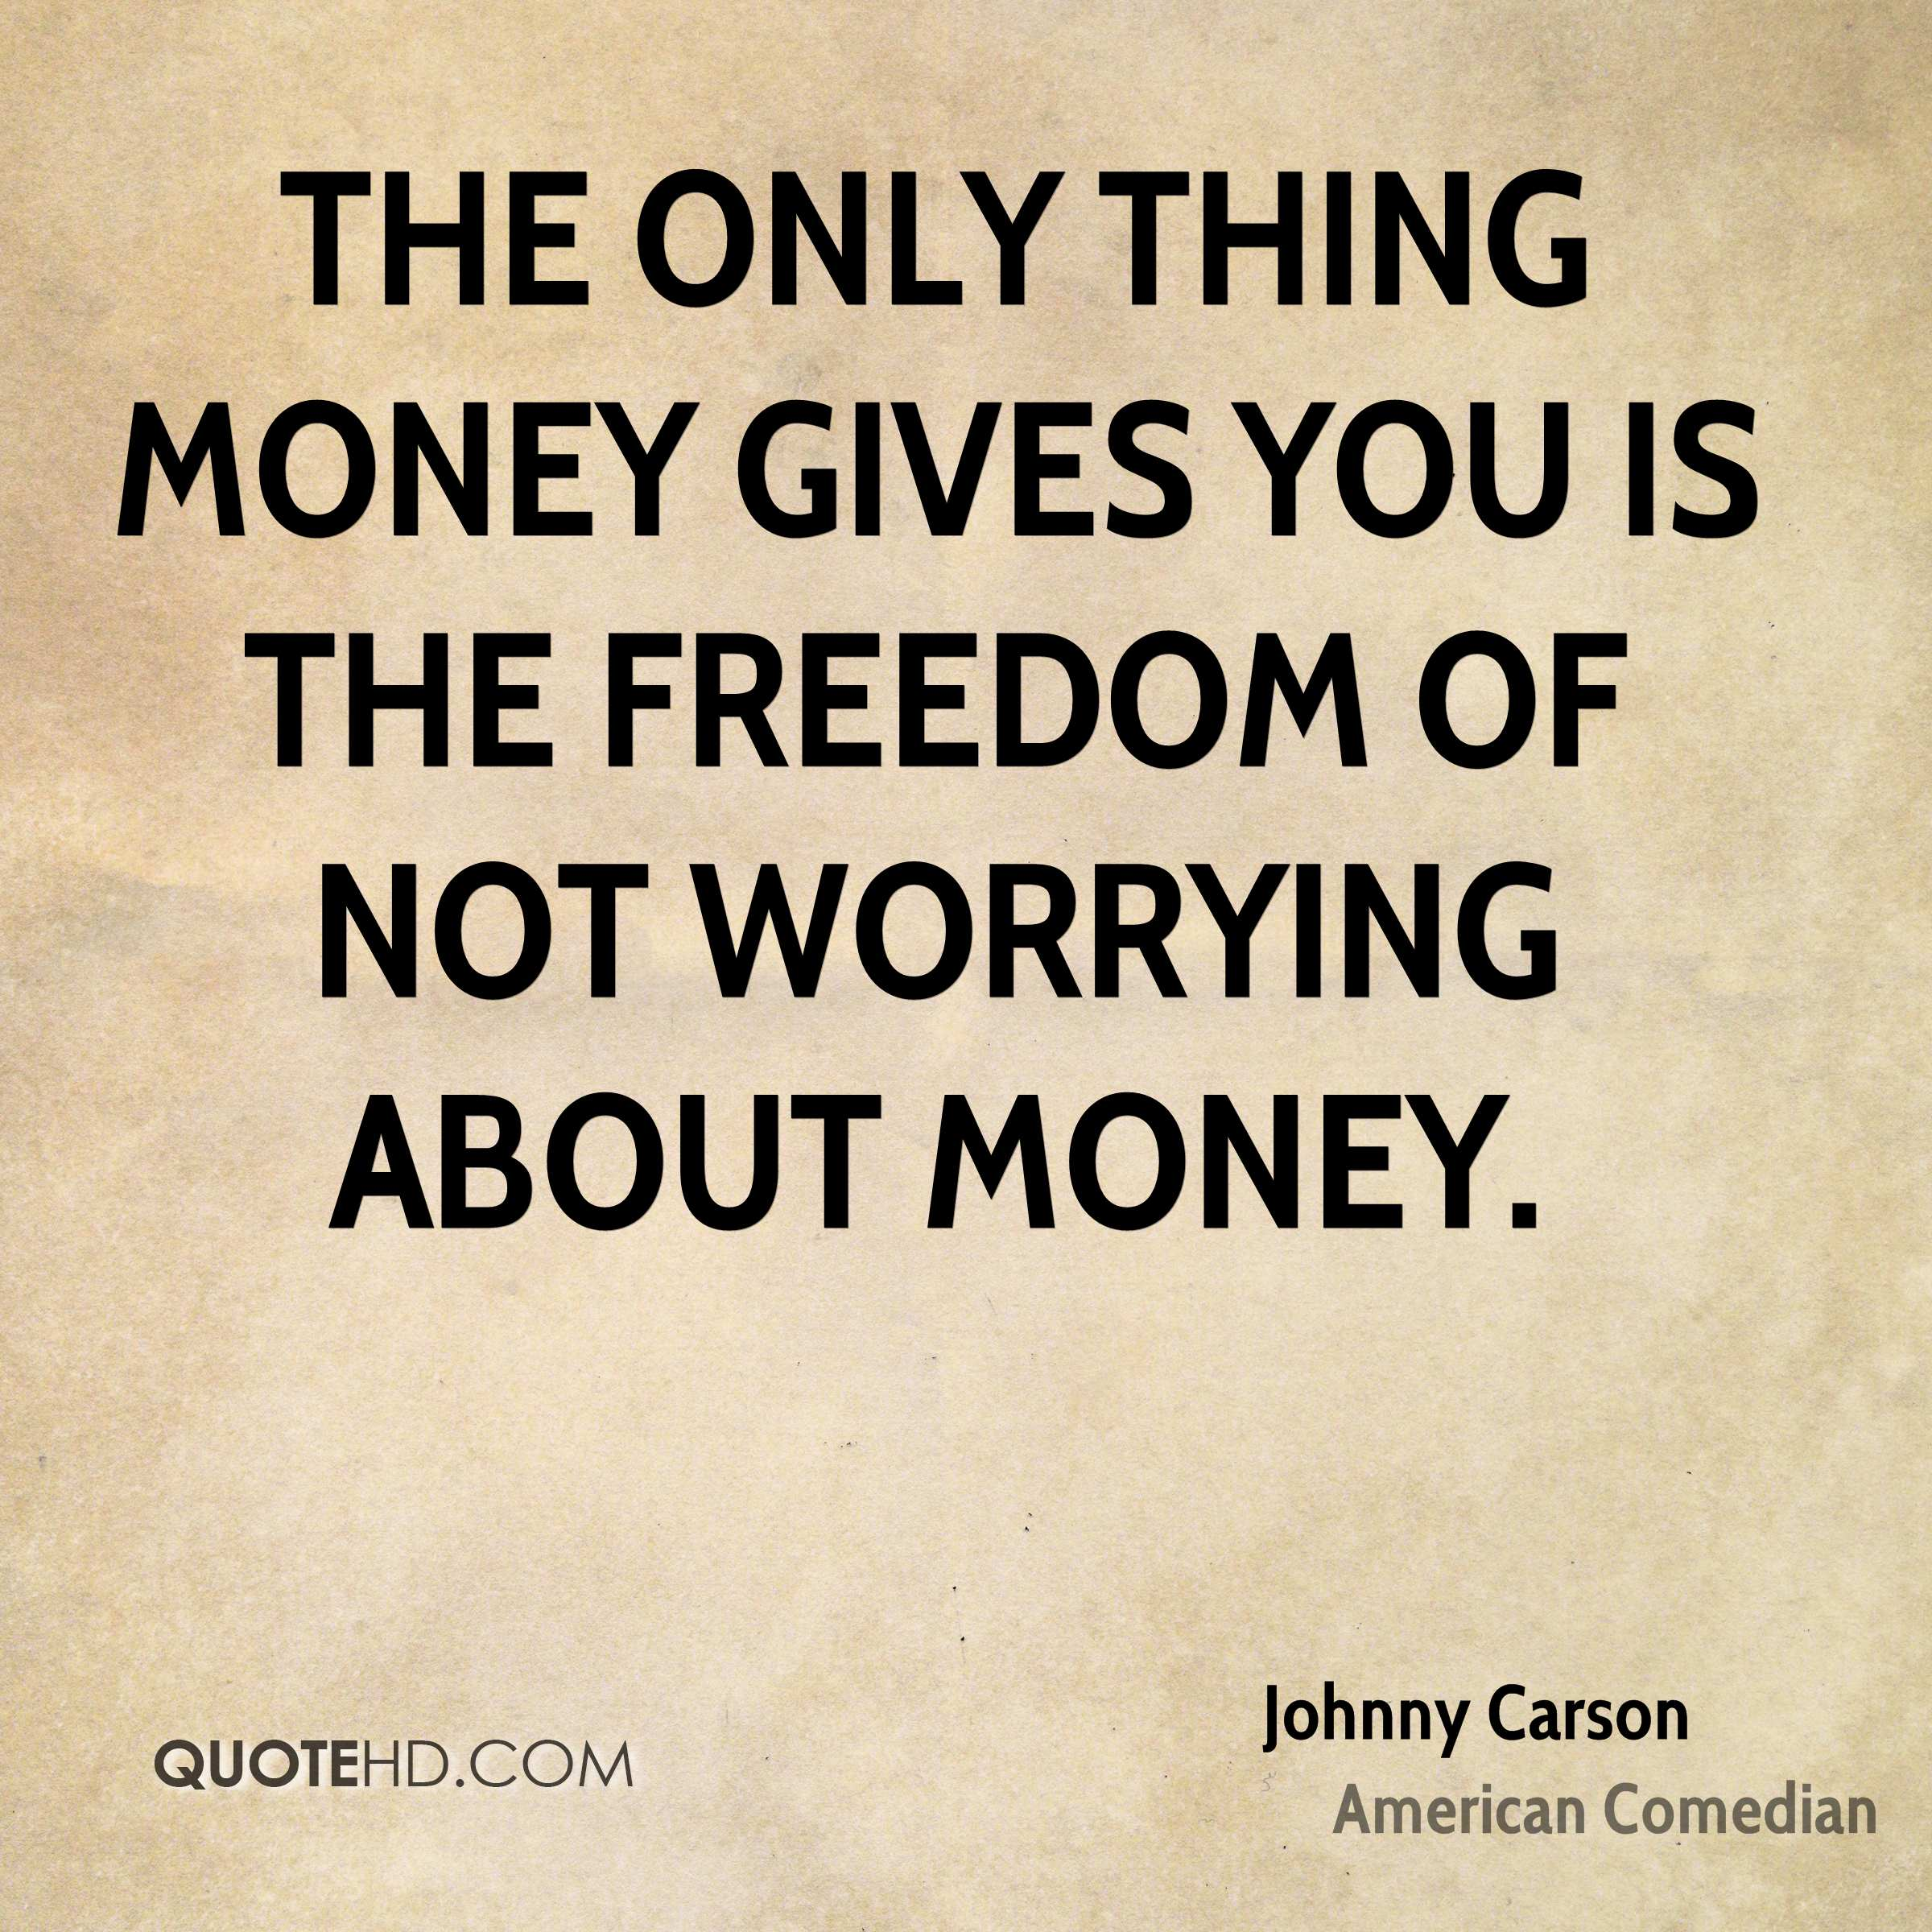 The only thing money gives you is the freedom of not worrying about money.